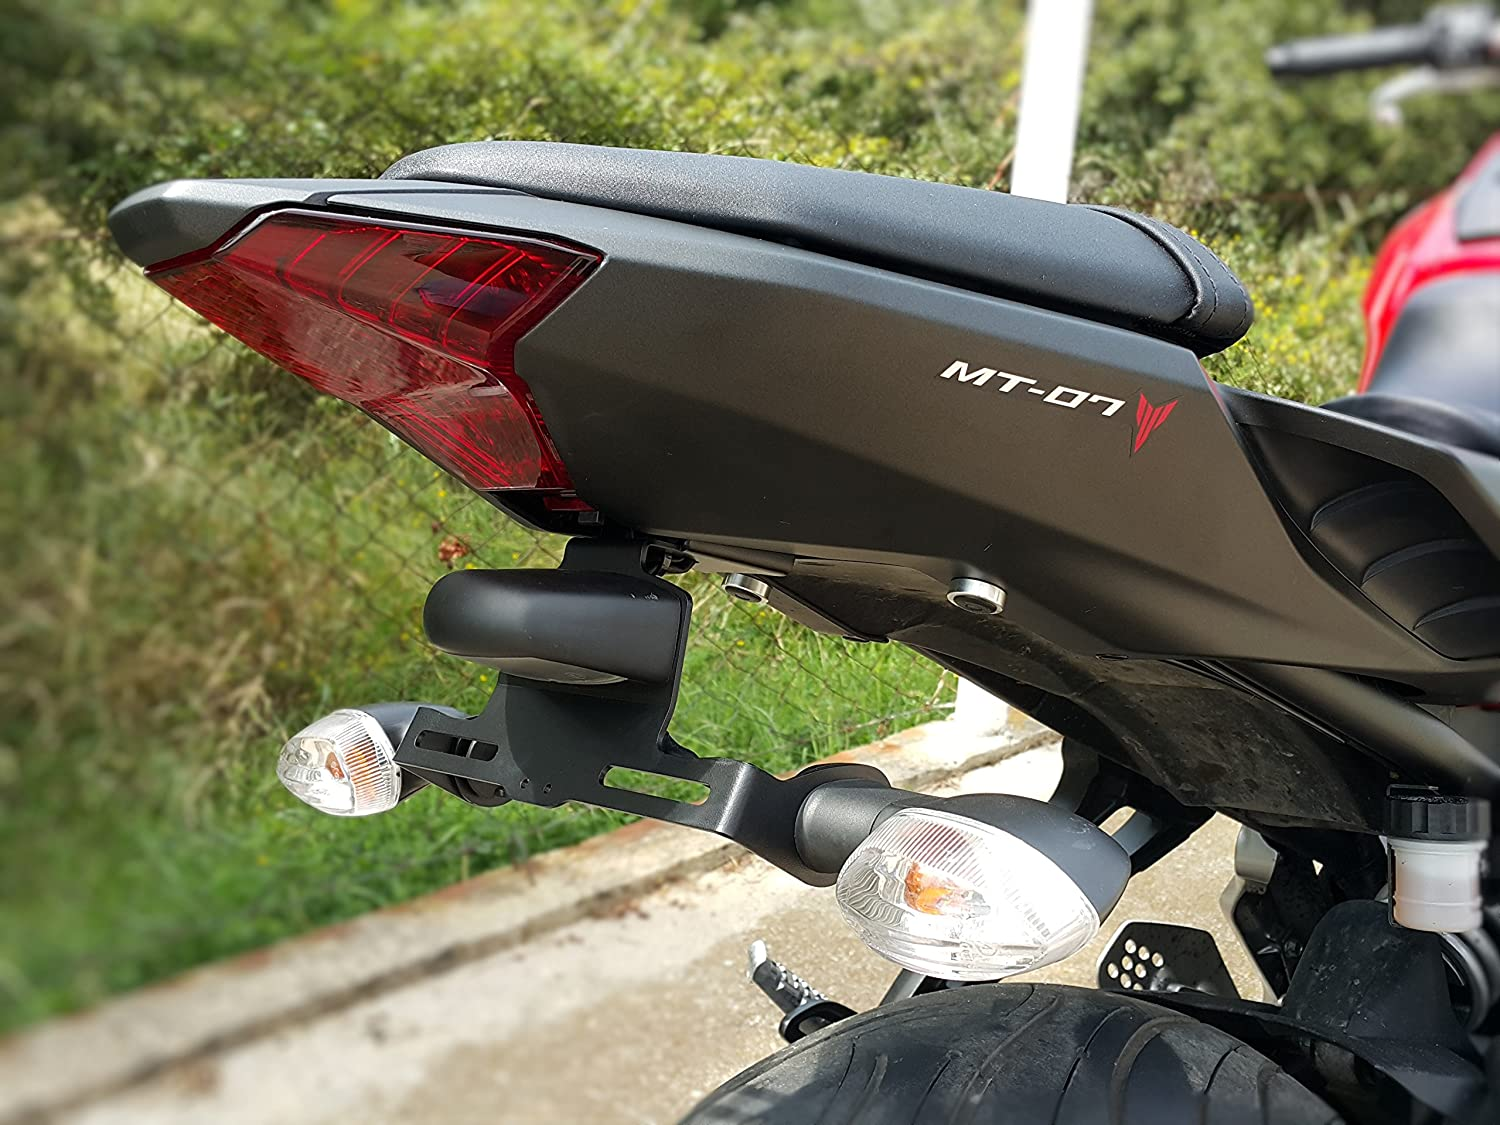 Top quality Motorcycle Tail Tidy License Plate Holder For YAMAHA MT 07 MT07 MT-07 FZ07 FZ-07 2013-2017 2018 2019 Accessories Motorcycle Accessories Color : 1 LOGO